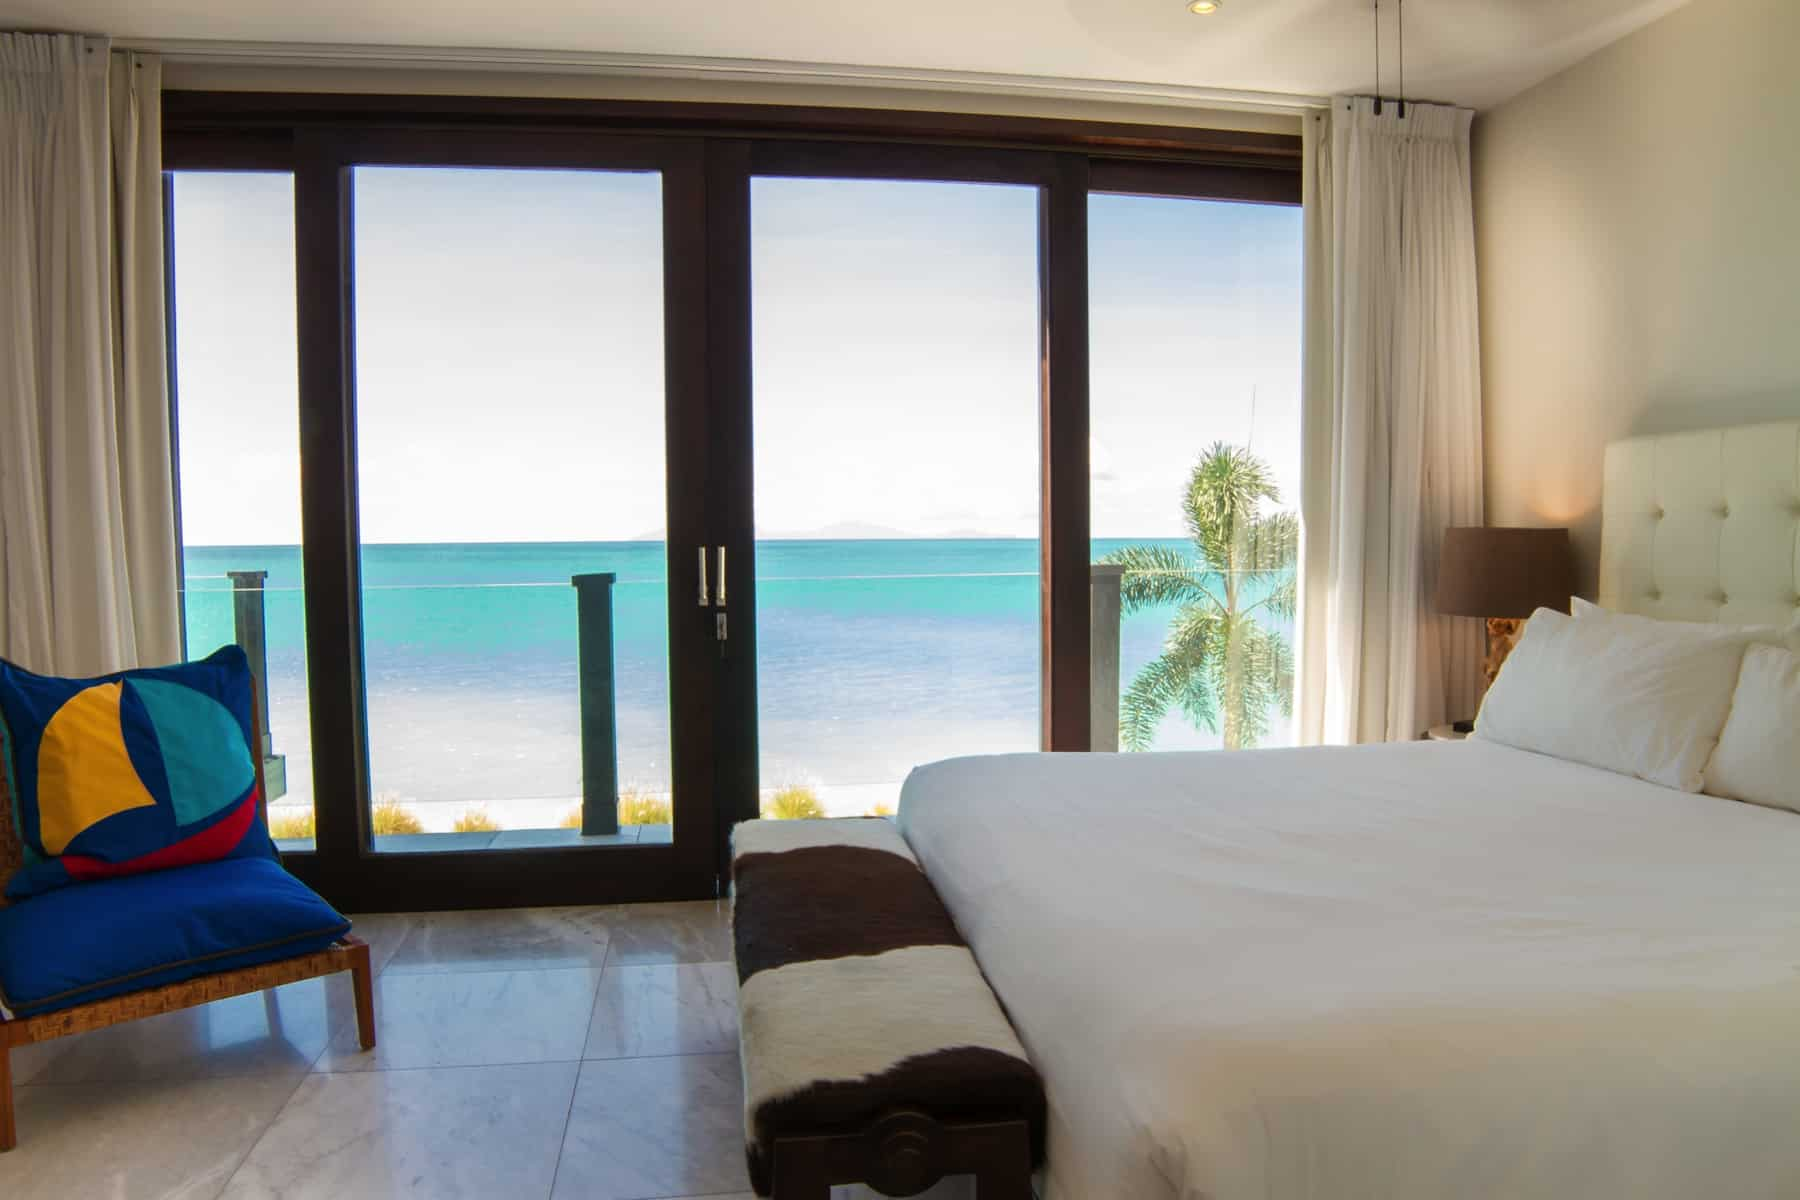 ocean view in bedroom